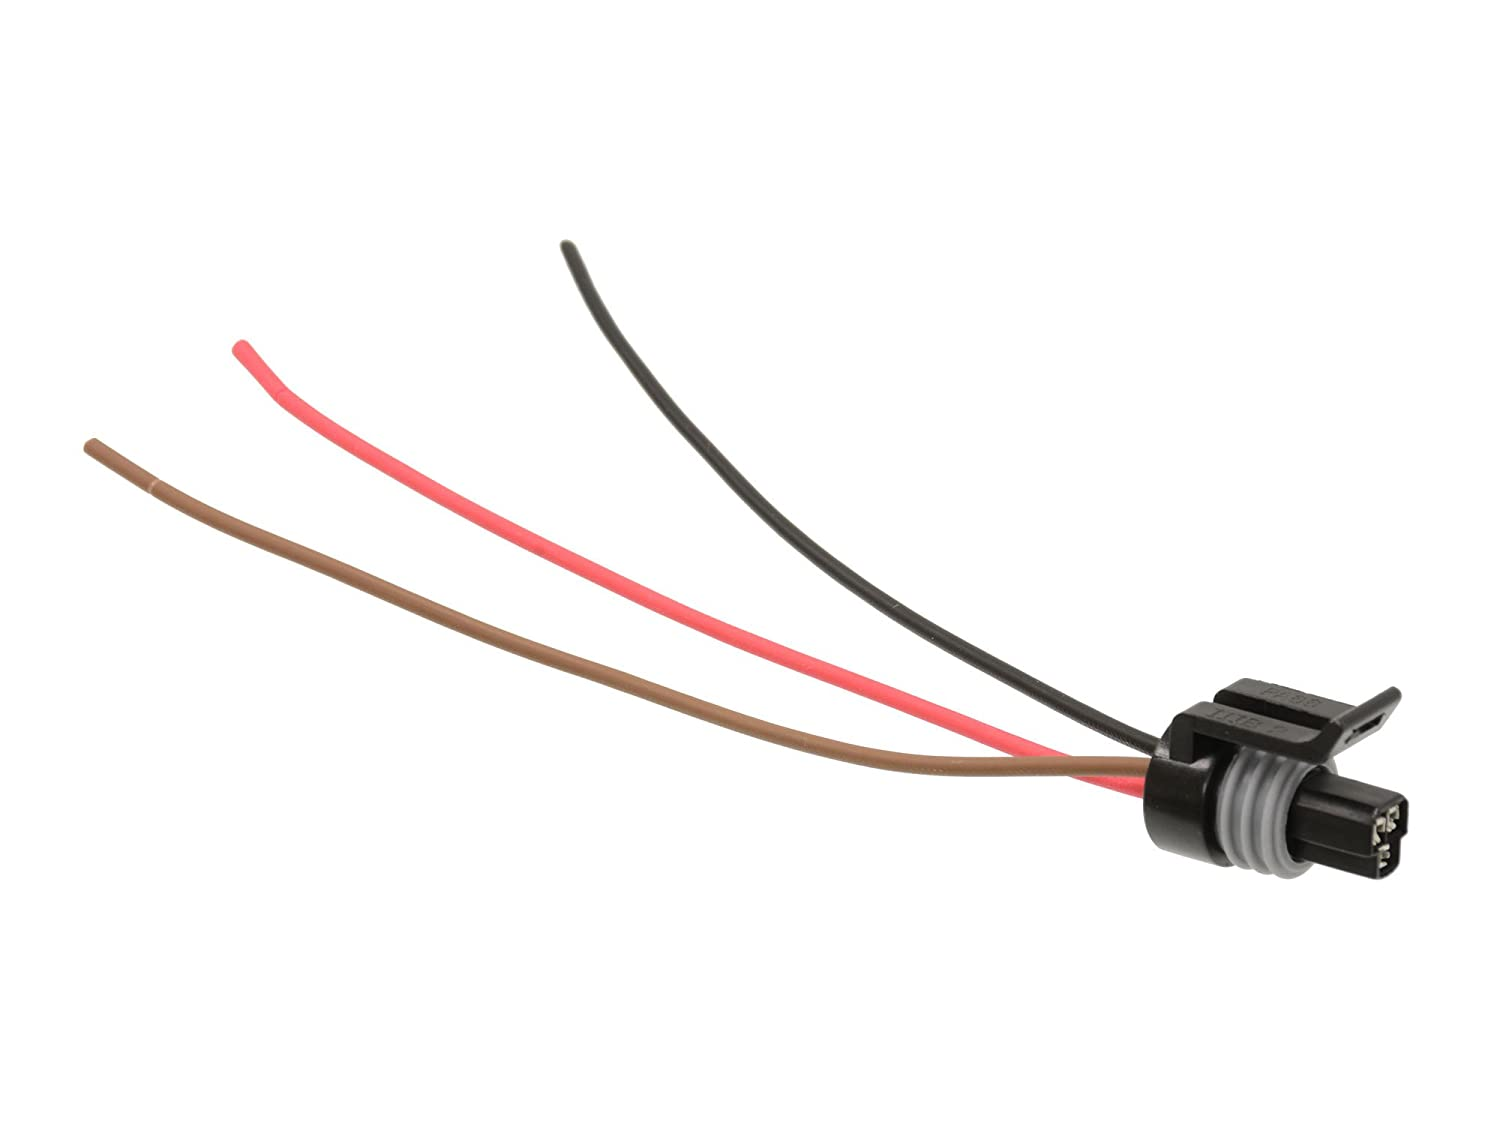 amazon com a c air conditioner switch wiring harness Wiring Harness 93A050059